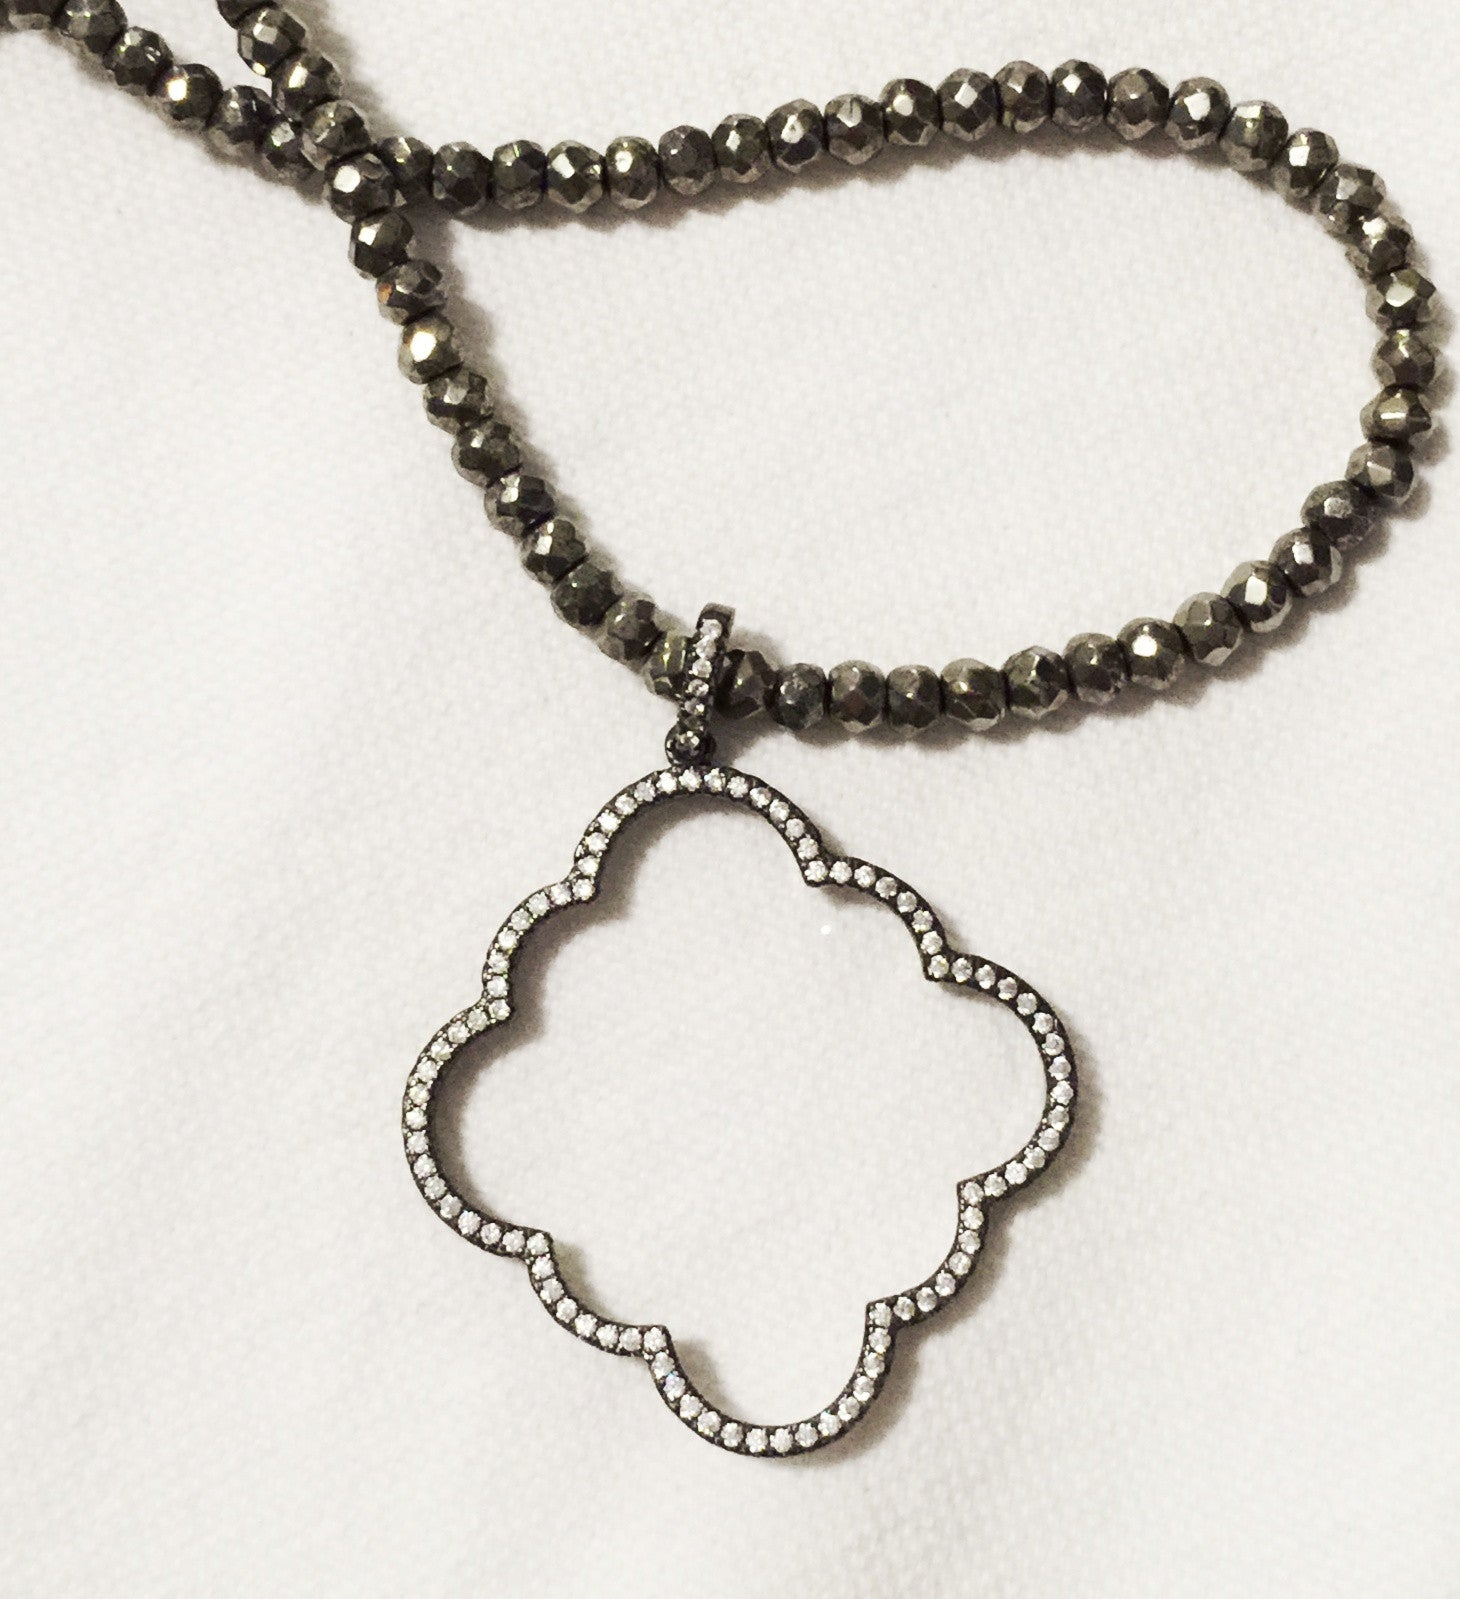 St. Ariana Pave Necklace